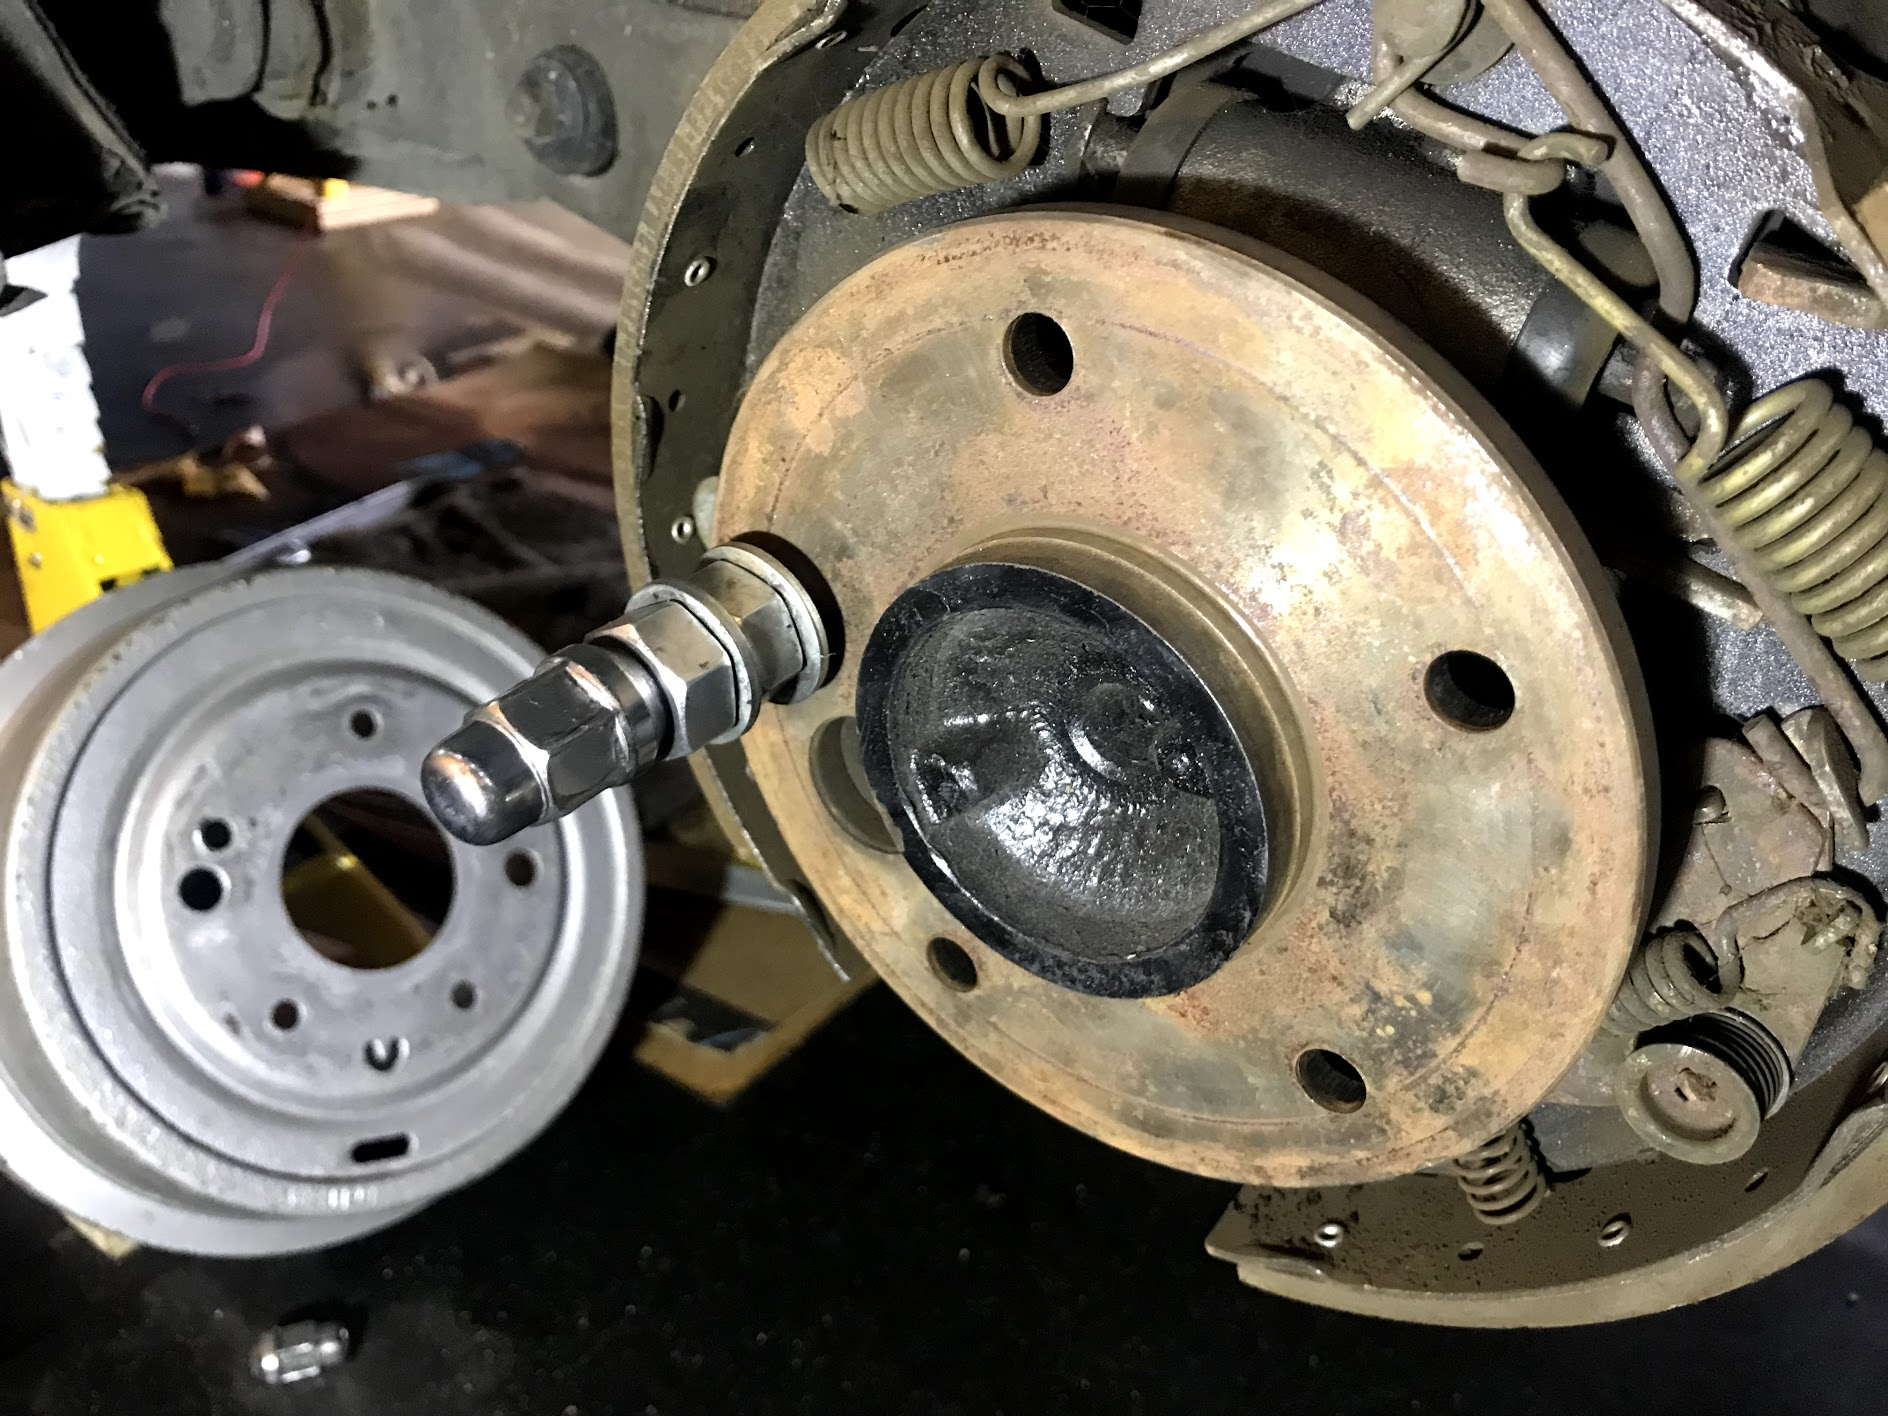 Stripped nuts used as spacers